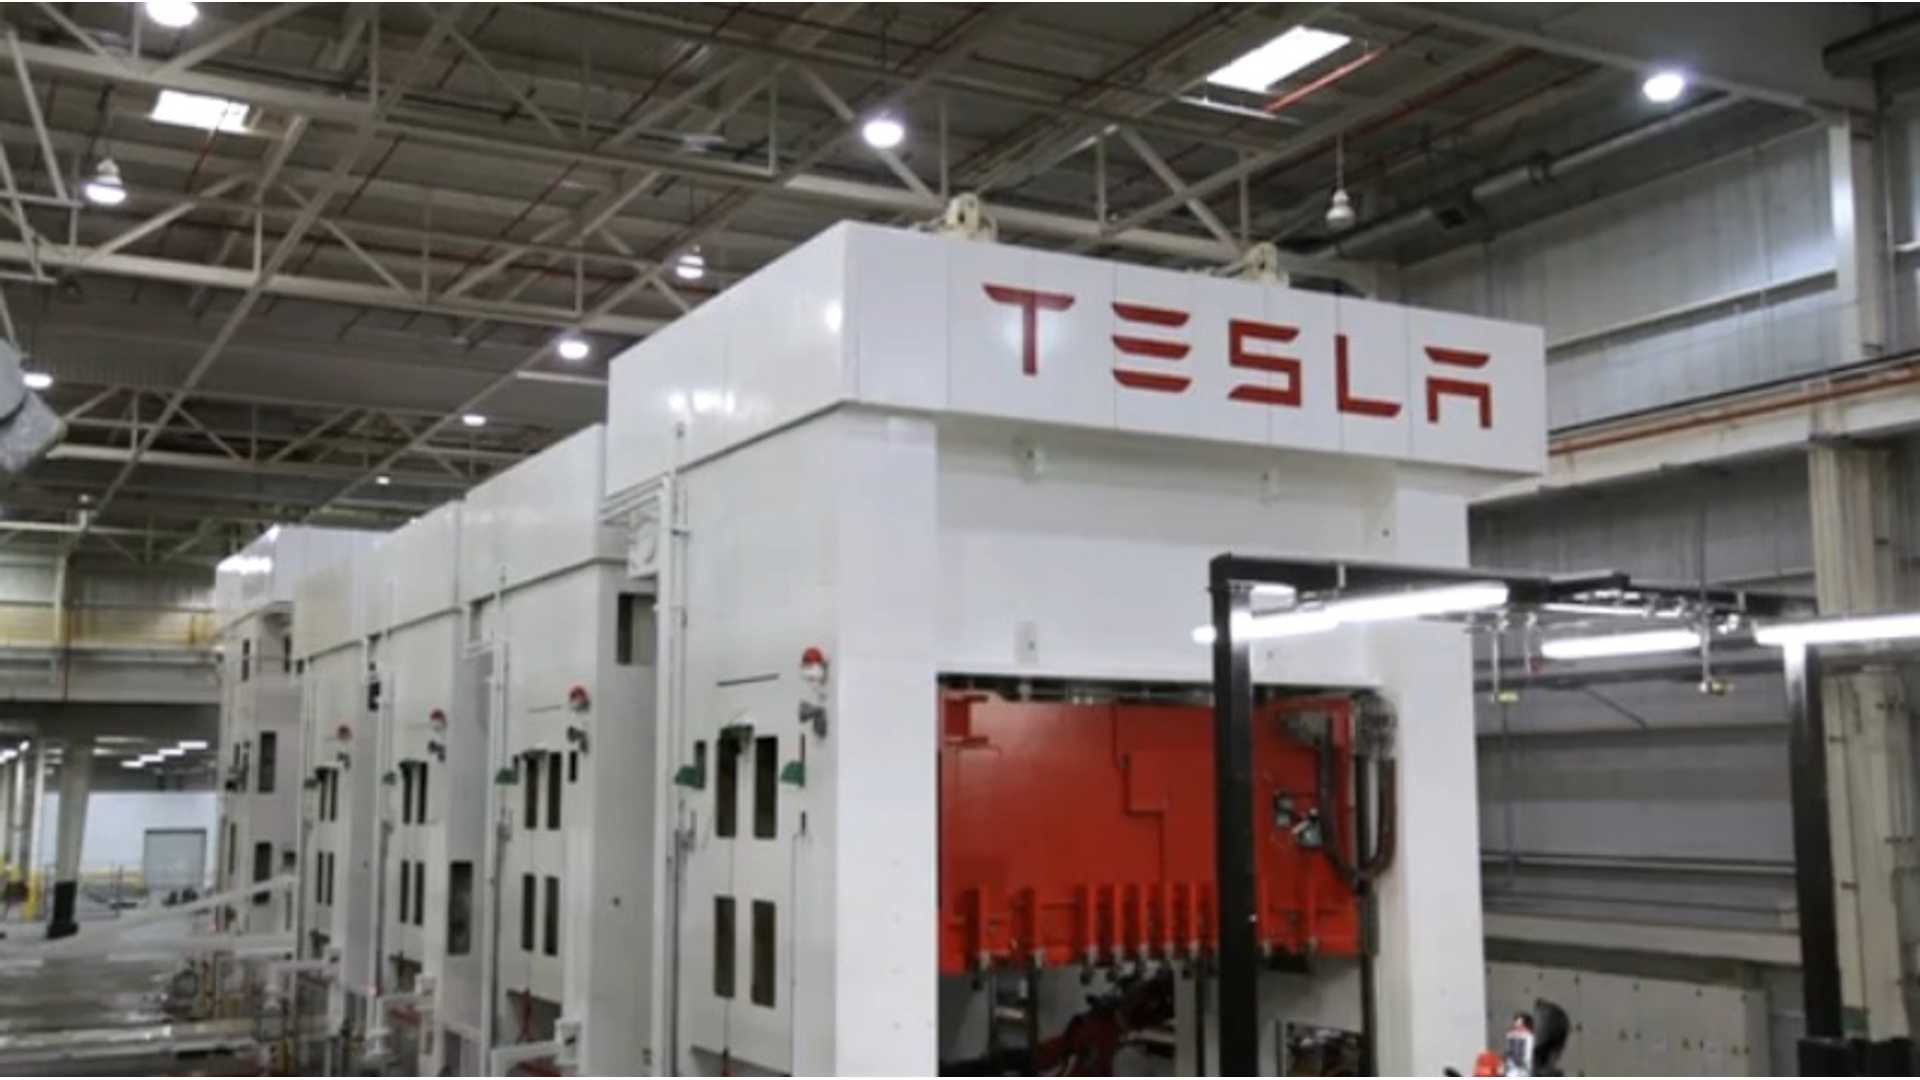 Tesla Shanghai Gigafactory Is Fully Functional, Despite False Reports